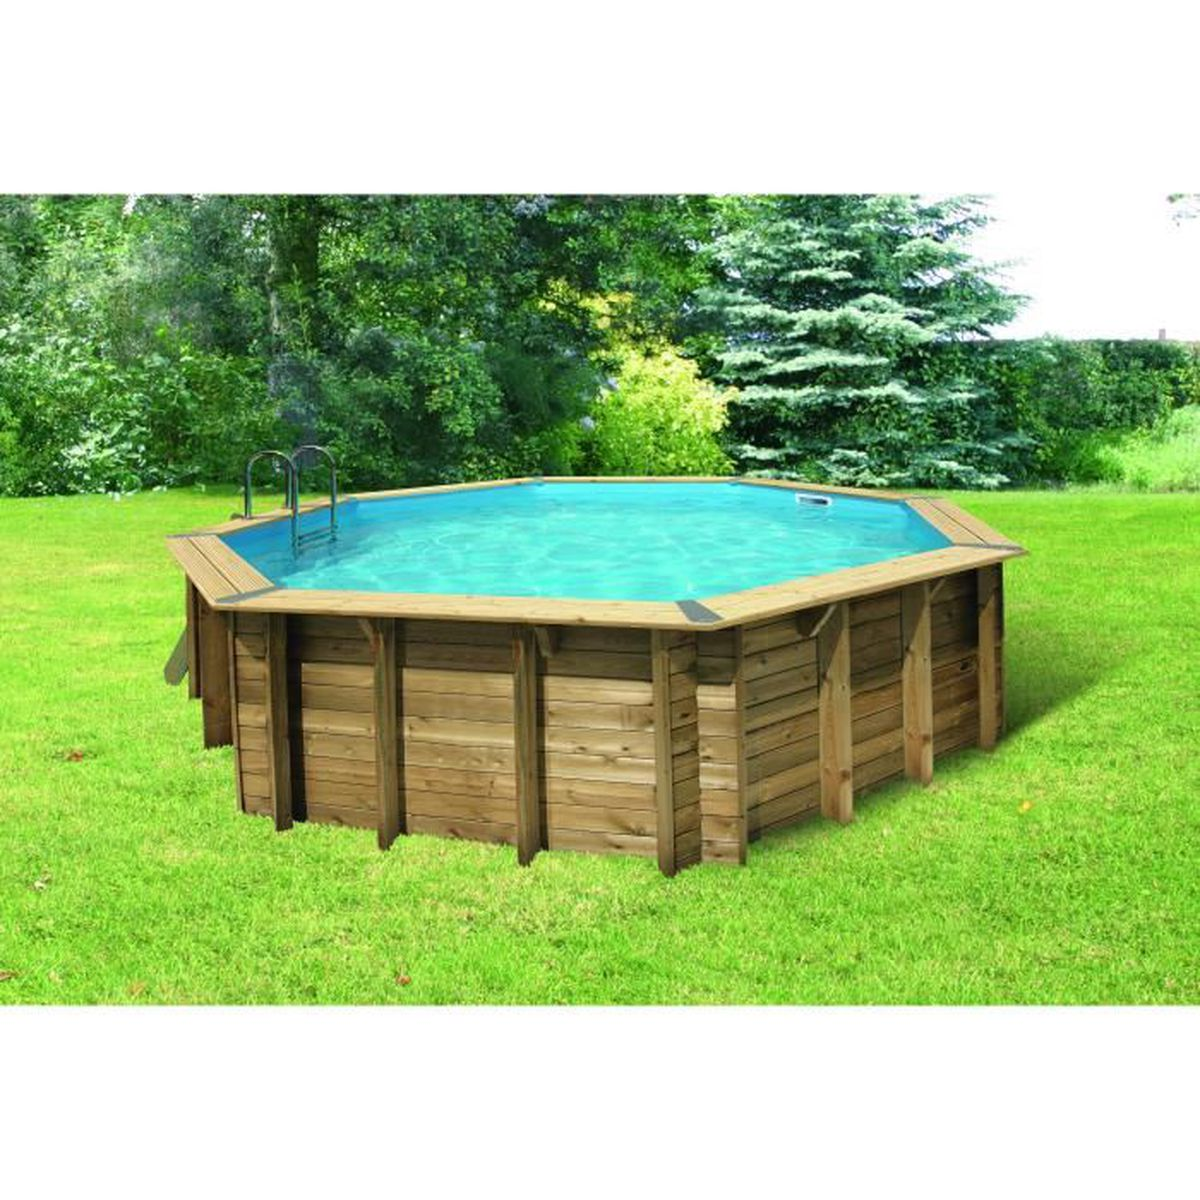 ubbink piscine octogonale en bois 580xh130 cm liner gris clair achat vente piscine. Black Bedroom Furniture Sets. Home Design Ideas